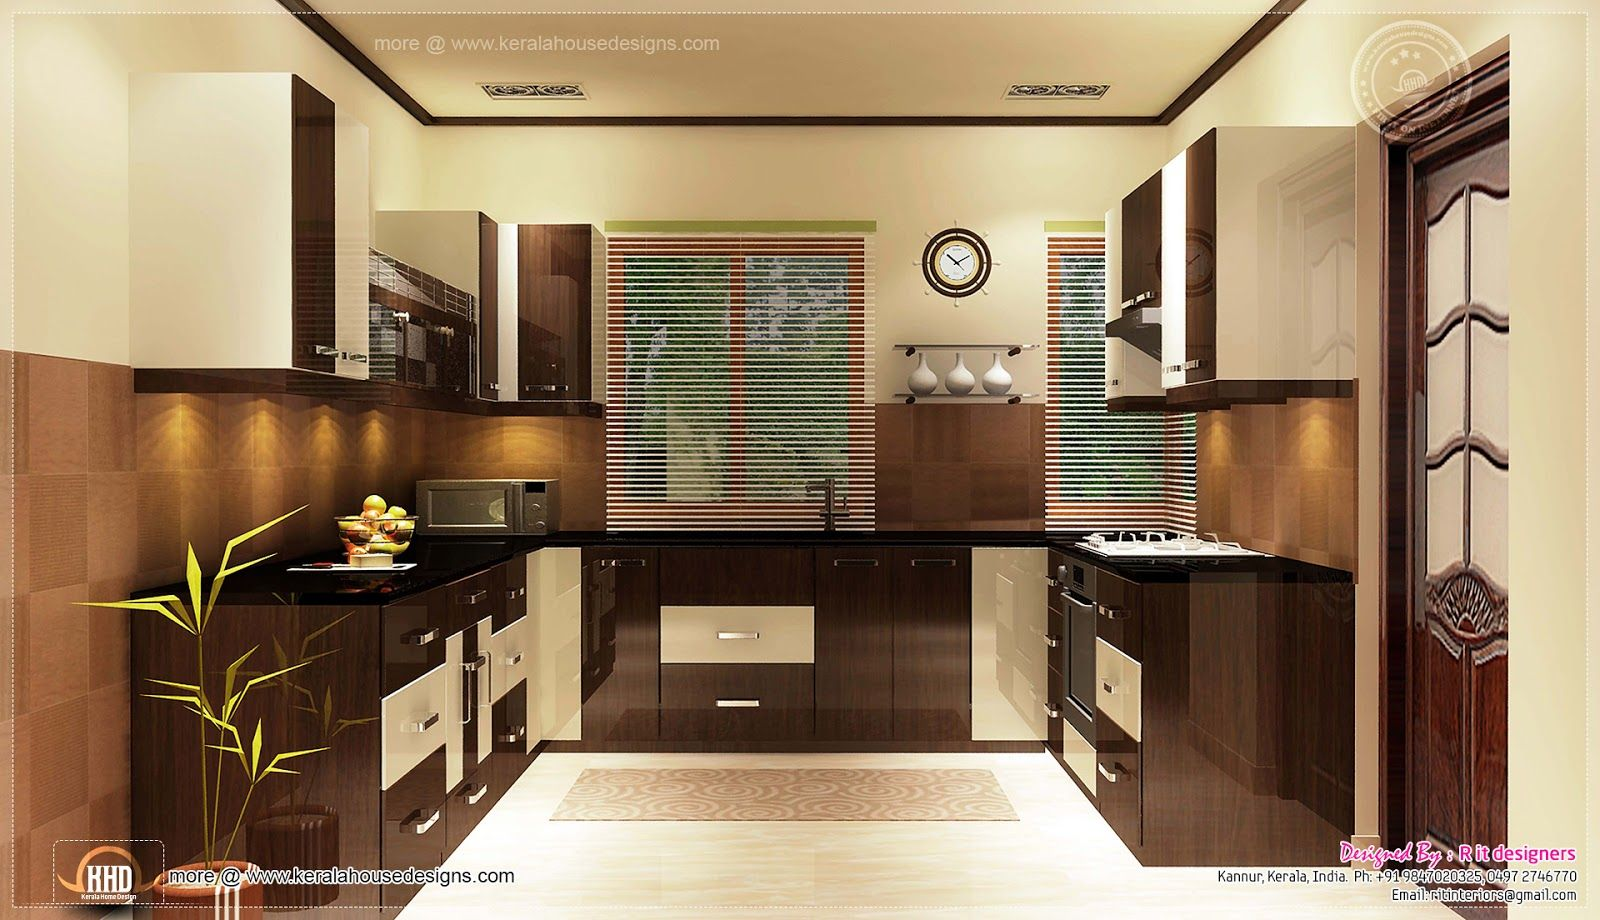 design for indian interiors - Google Search   Kitchen   Pinterest ...